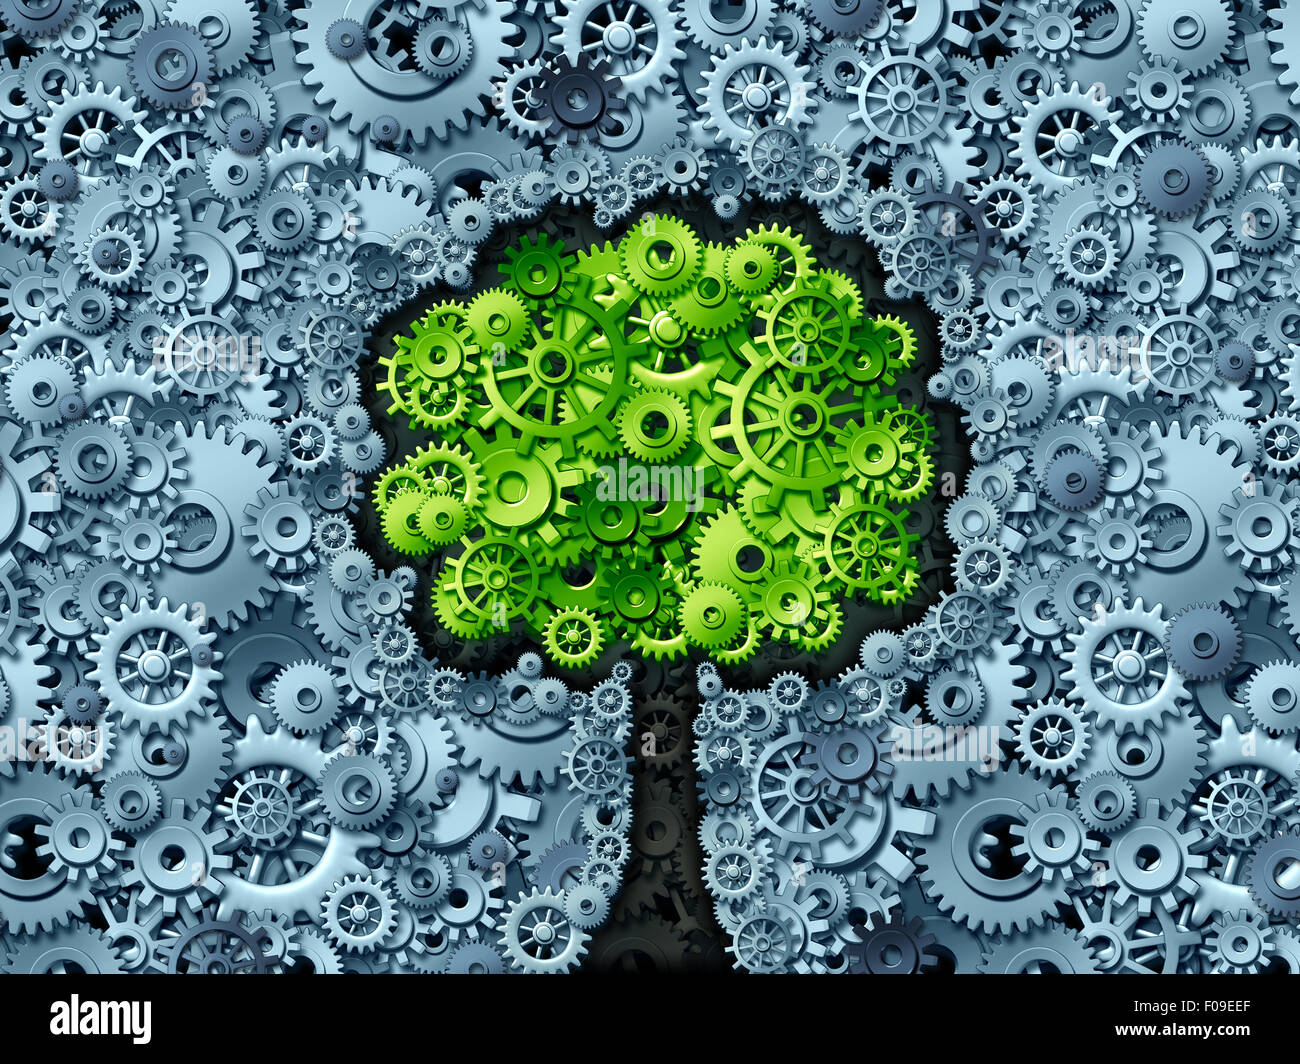 Business tree concept as a symbol for a growing economy and industry represented by machine gears and cog wheels - Stock Image